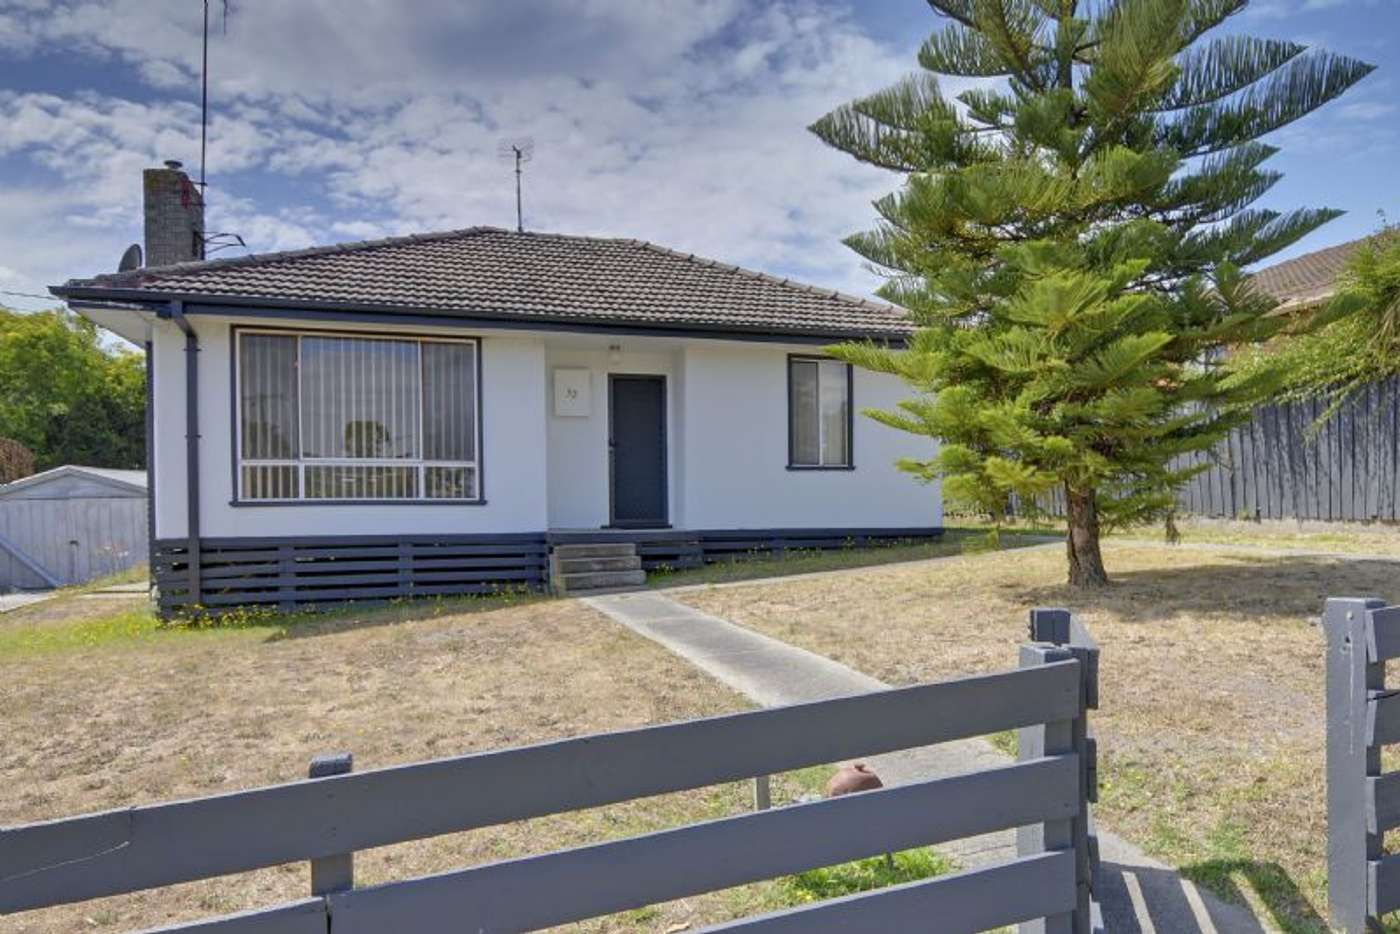 Main view of Homely house listing, 32 Haywood Street, Morwell VIC 3840